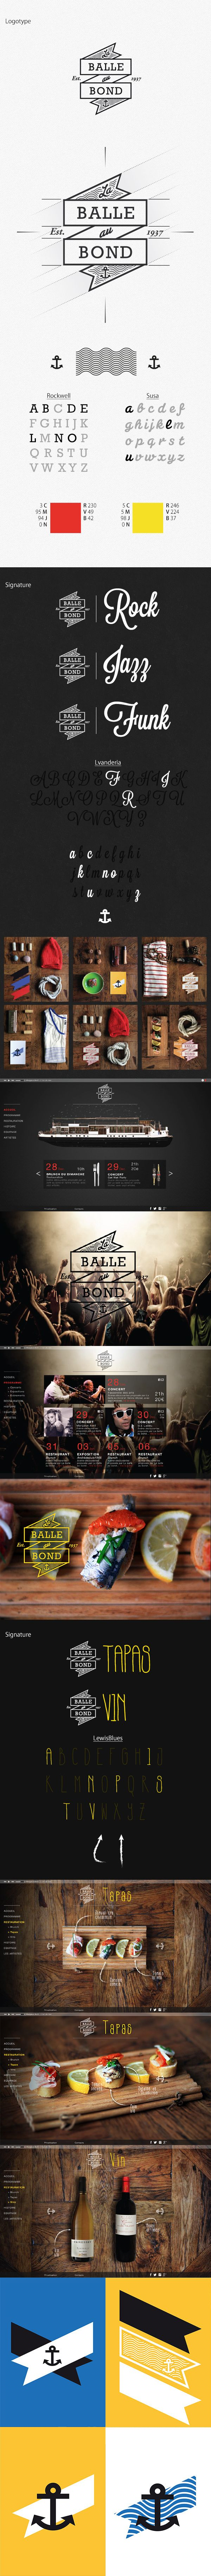 Balle au Bond on Behance in Stamping